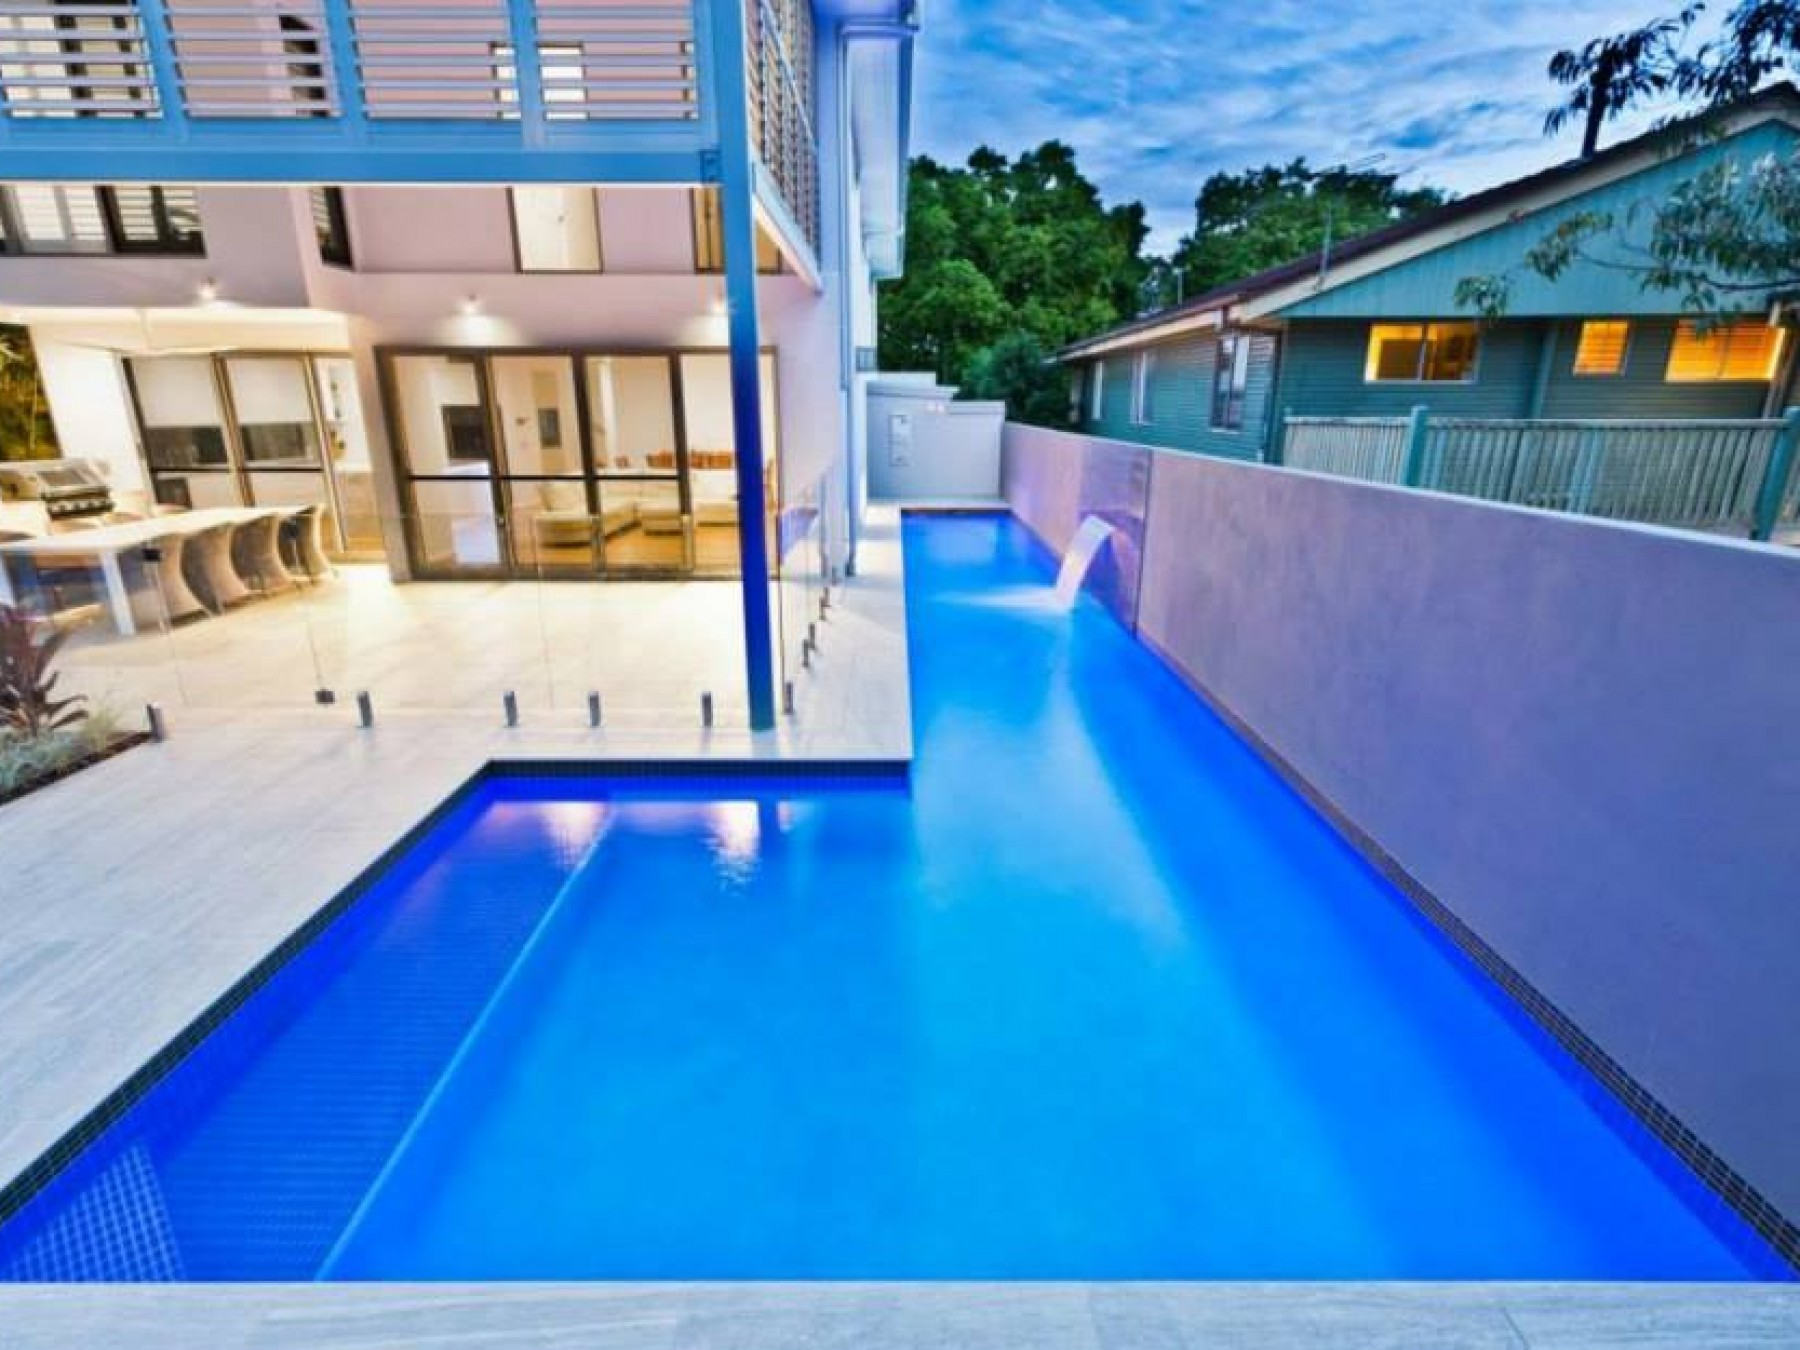 Selling or Leasing a pool in Bald Hills